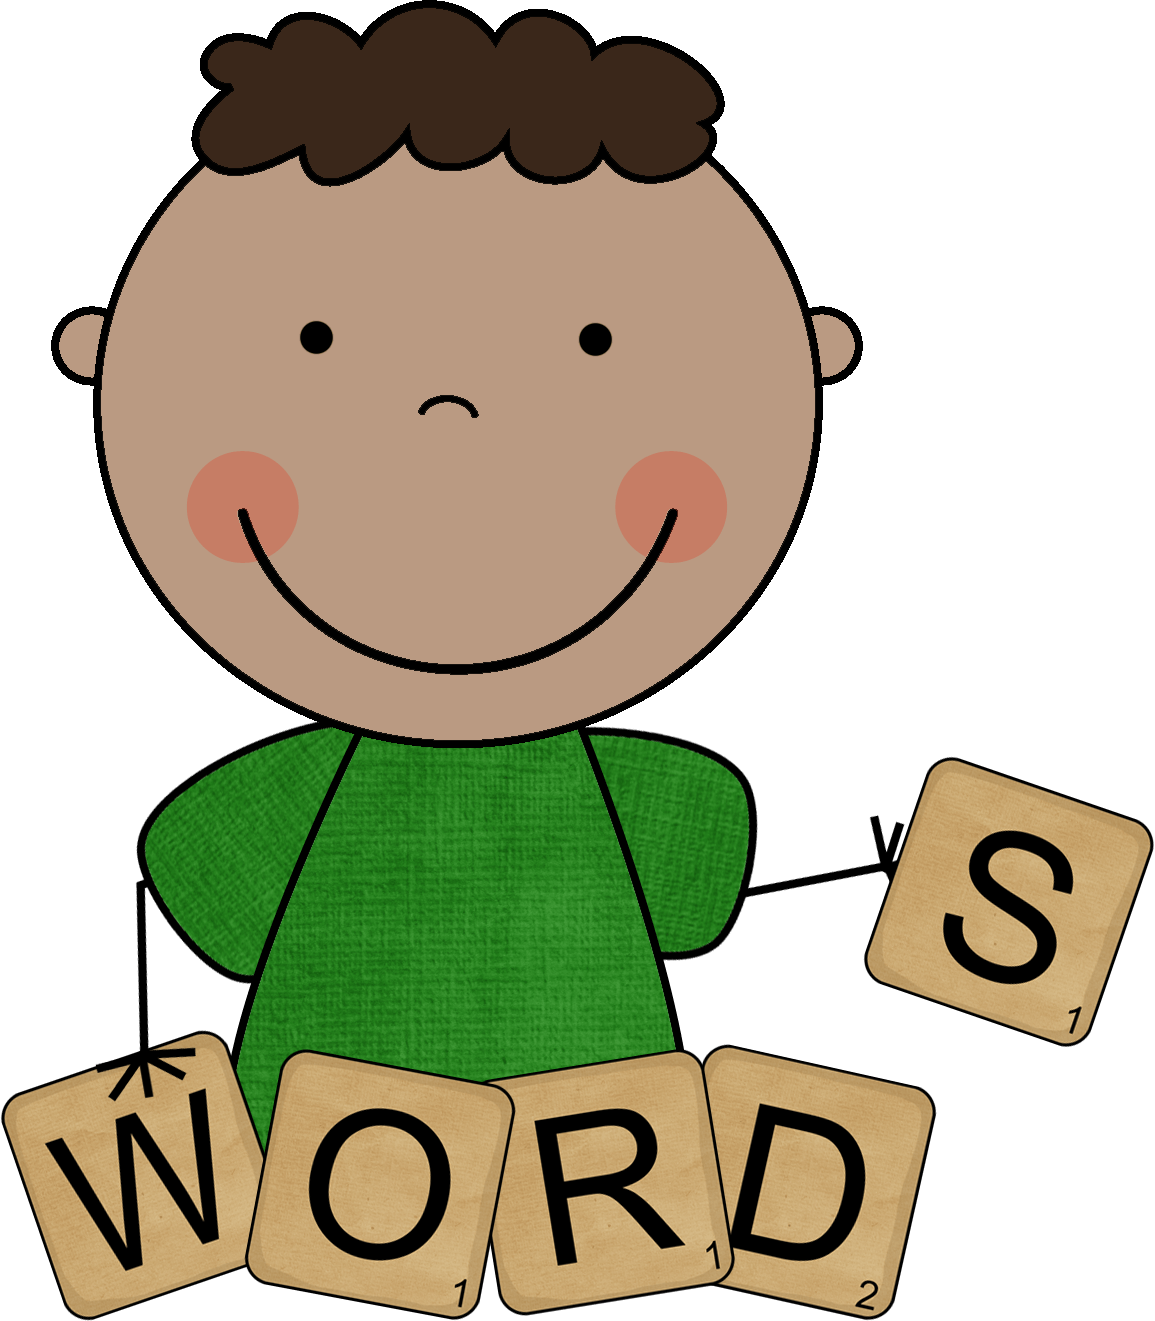 Language development clipart black and white word%20family%20clip%20art | Clipart Panda - Free Clipart Images black and white